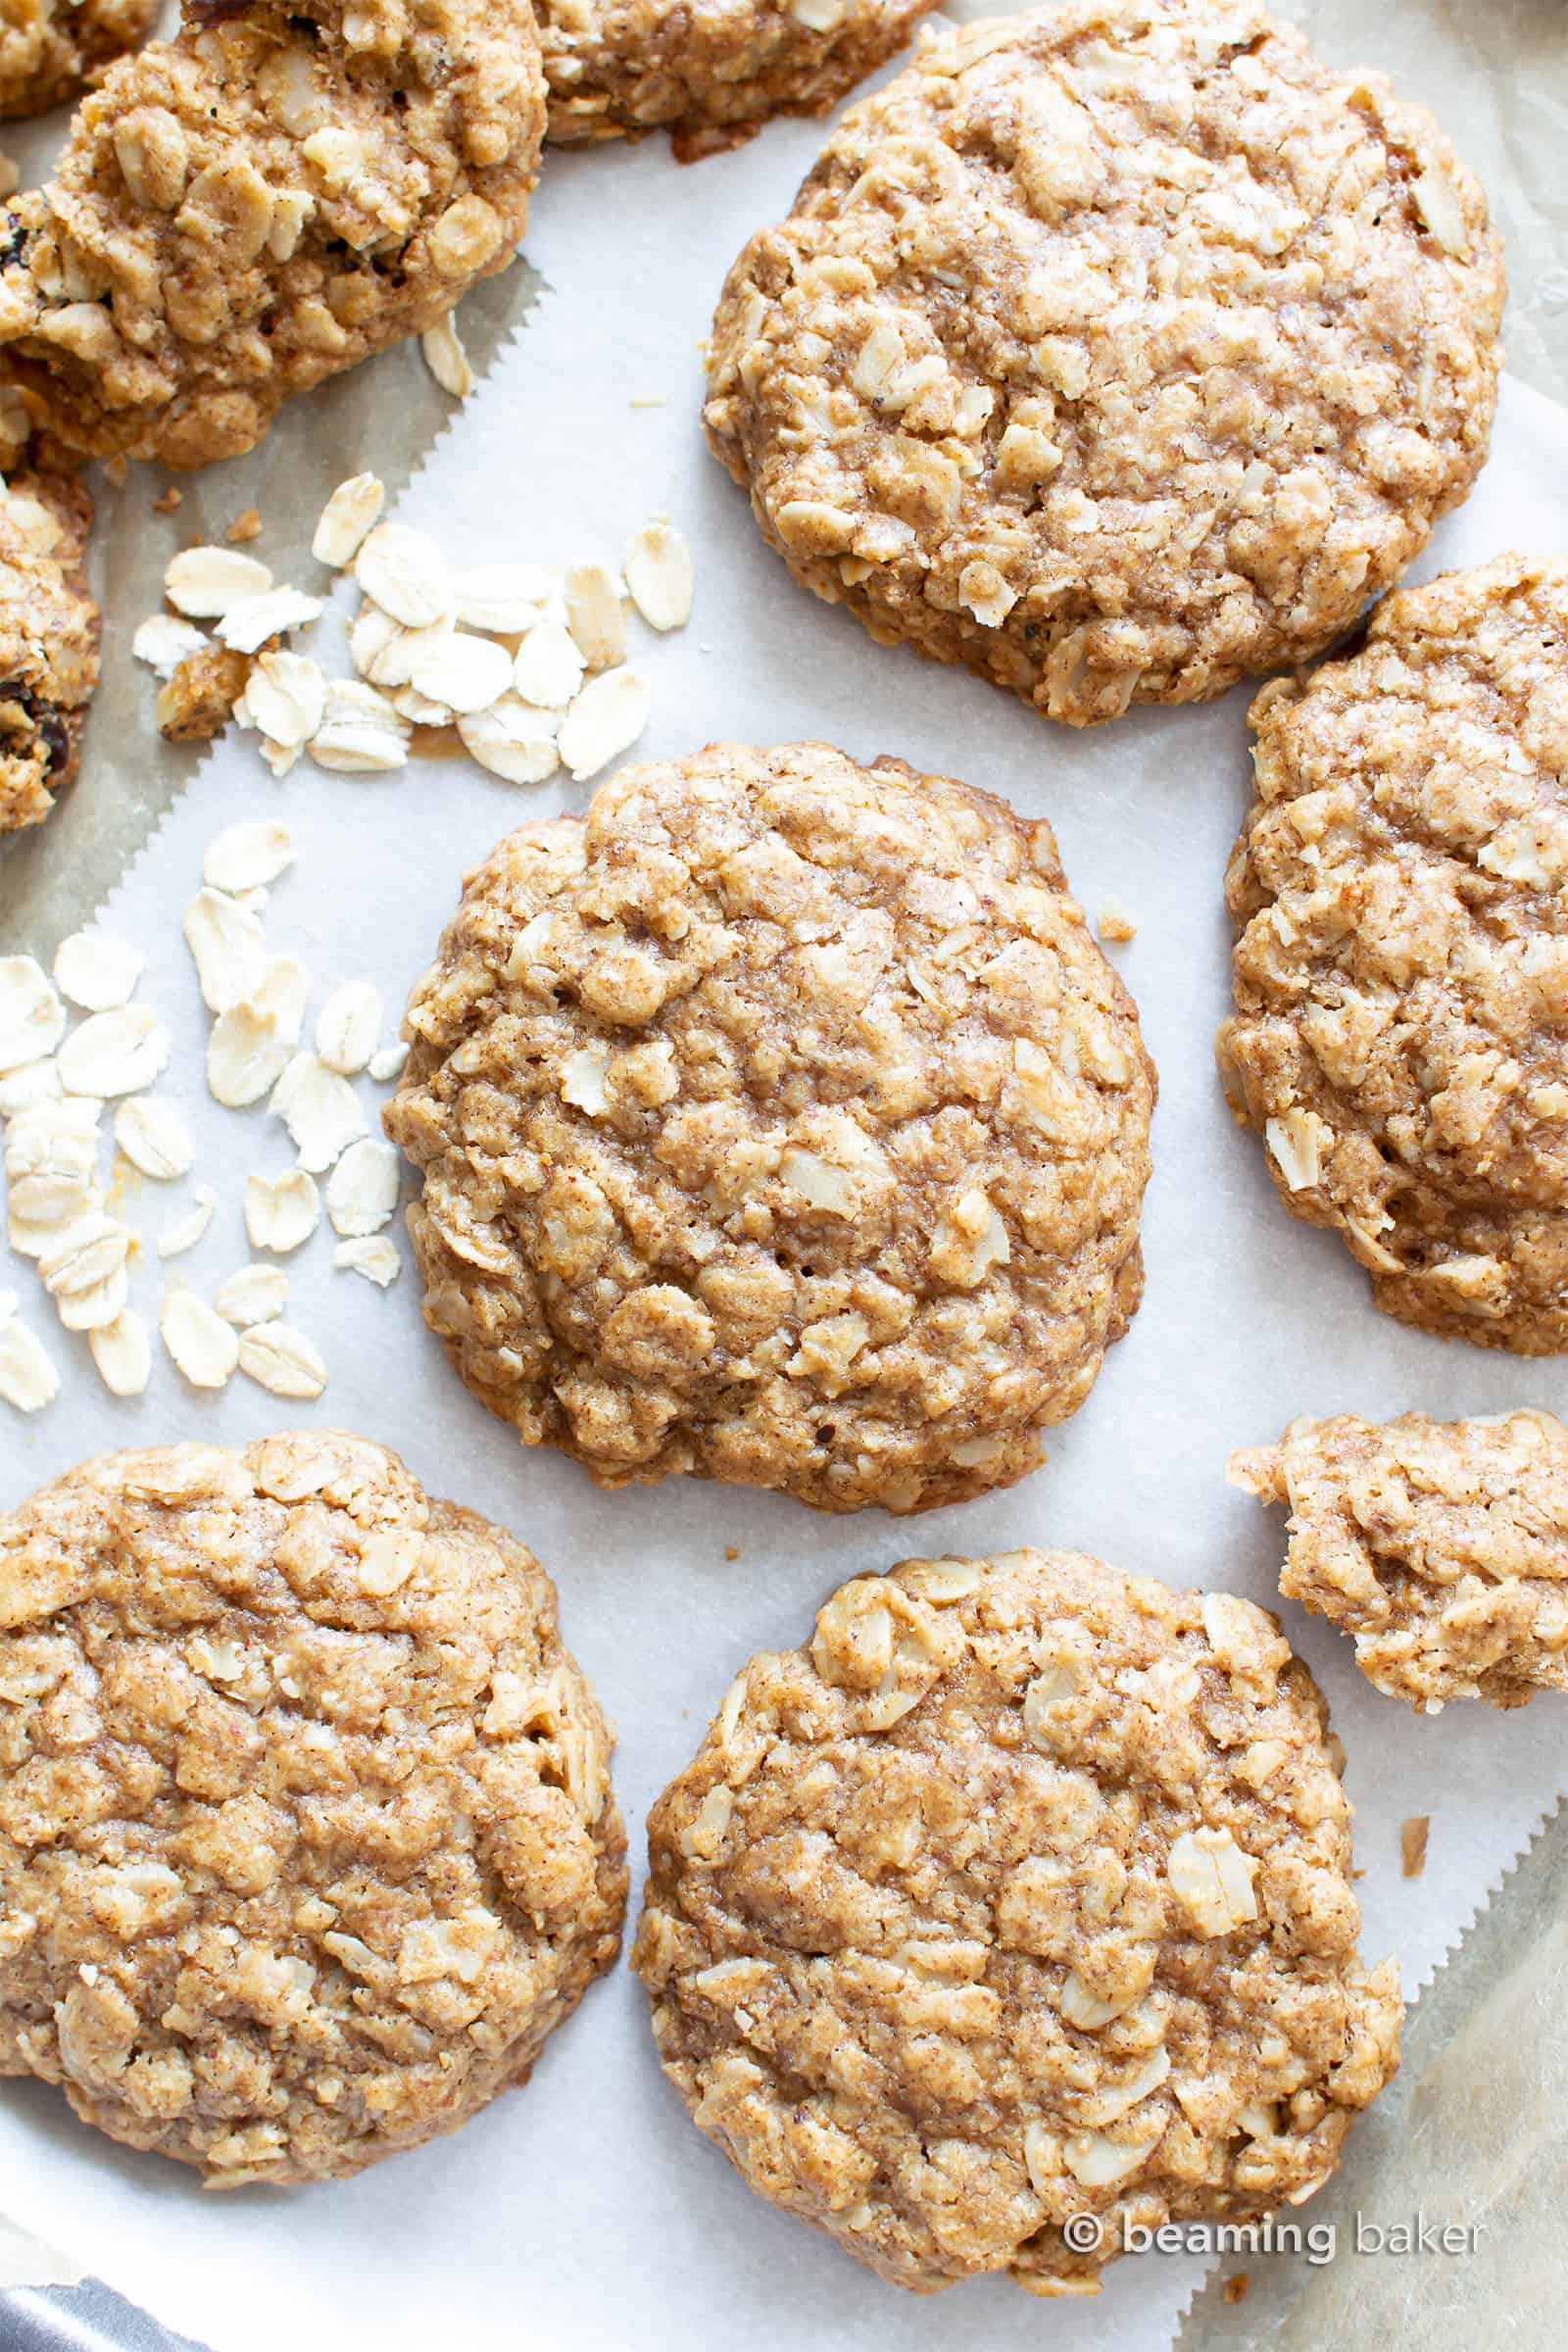 Easy Vegan Oatmeal Cookies (GF): a Simple recipe for the BEST Vegan Oatmeal Cookies! Chewy, moist centers with crispy, caramel-y edges & packed with comforting oatmeal. #OatmealCookies #Vegan #GlutenFree #Cookies | Recipe at BeamingBaker.com